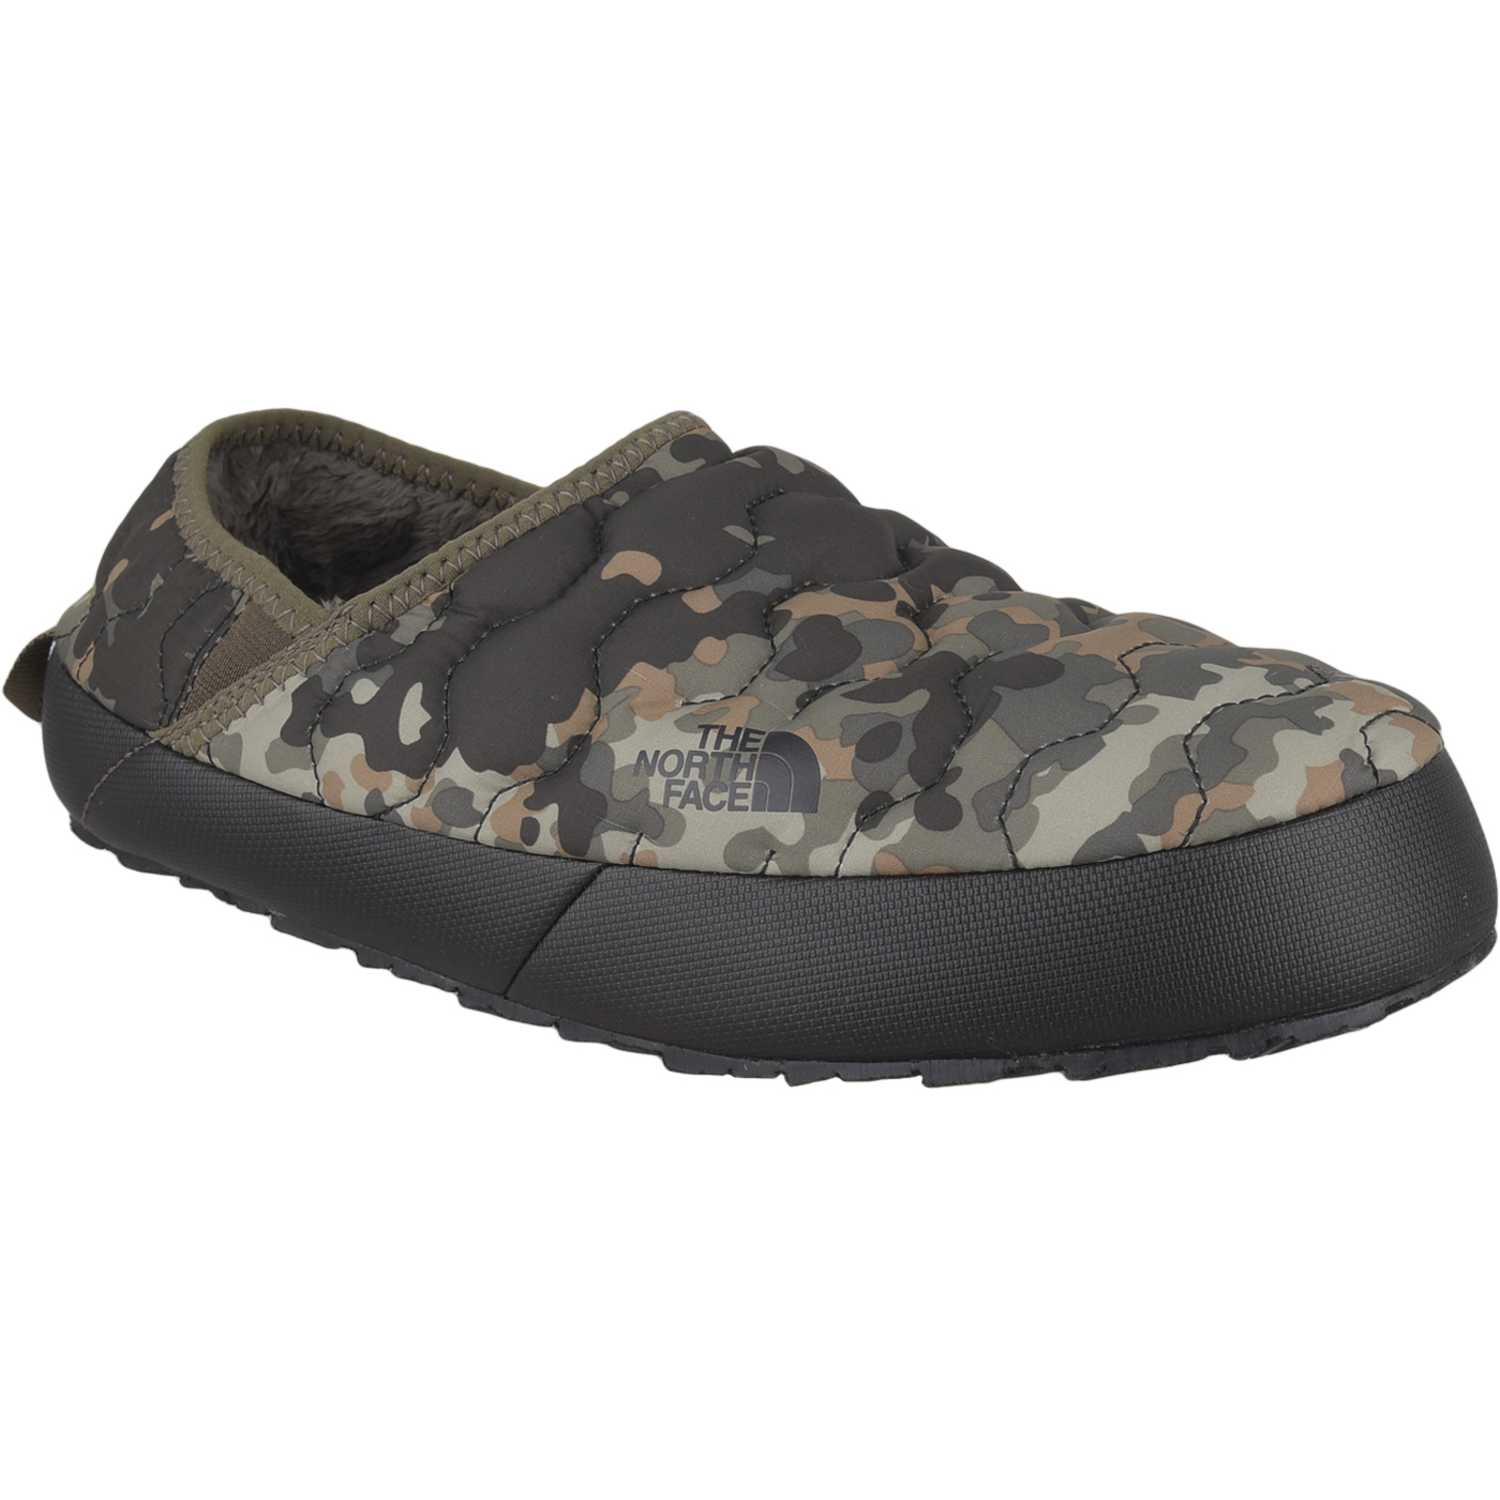 Pantufla de Hombre The North Face Camuflado m thermoball traction mule iv